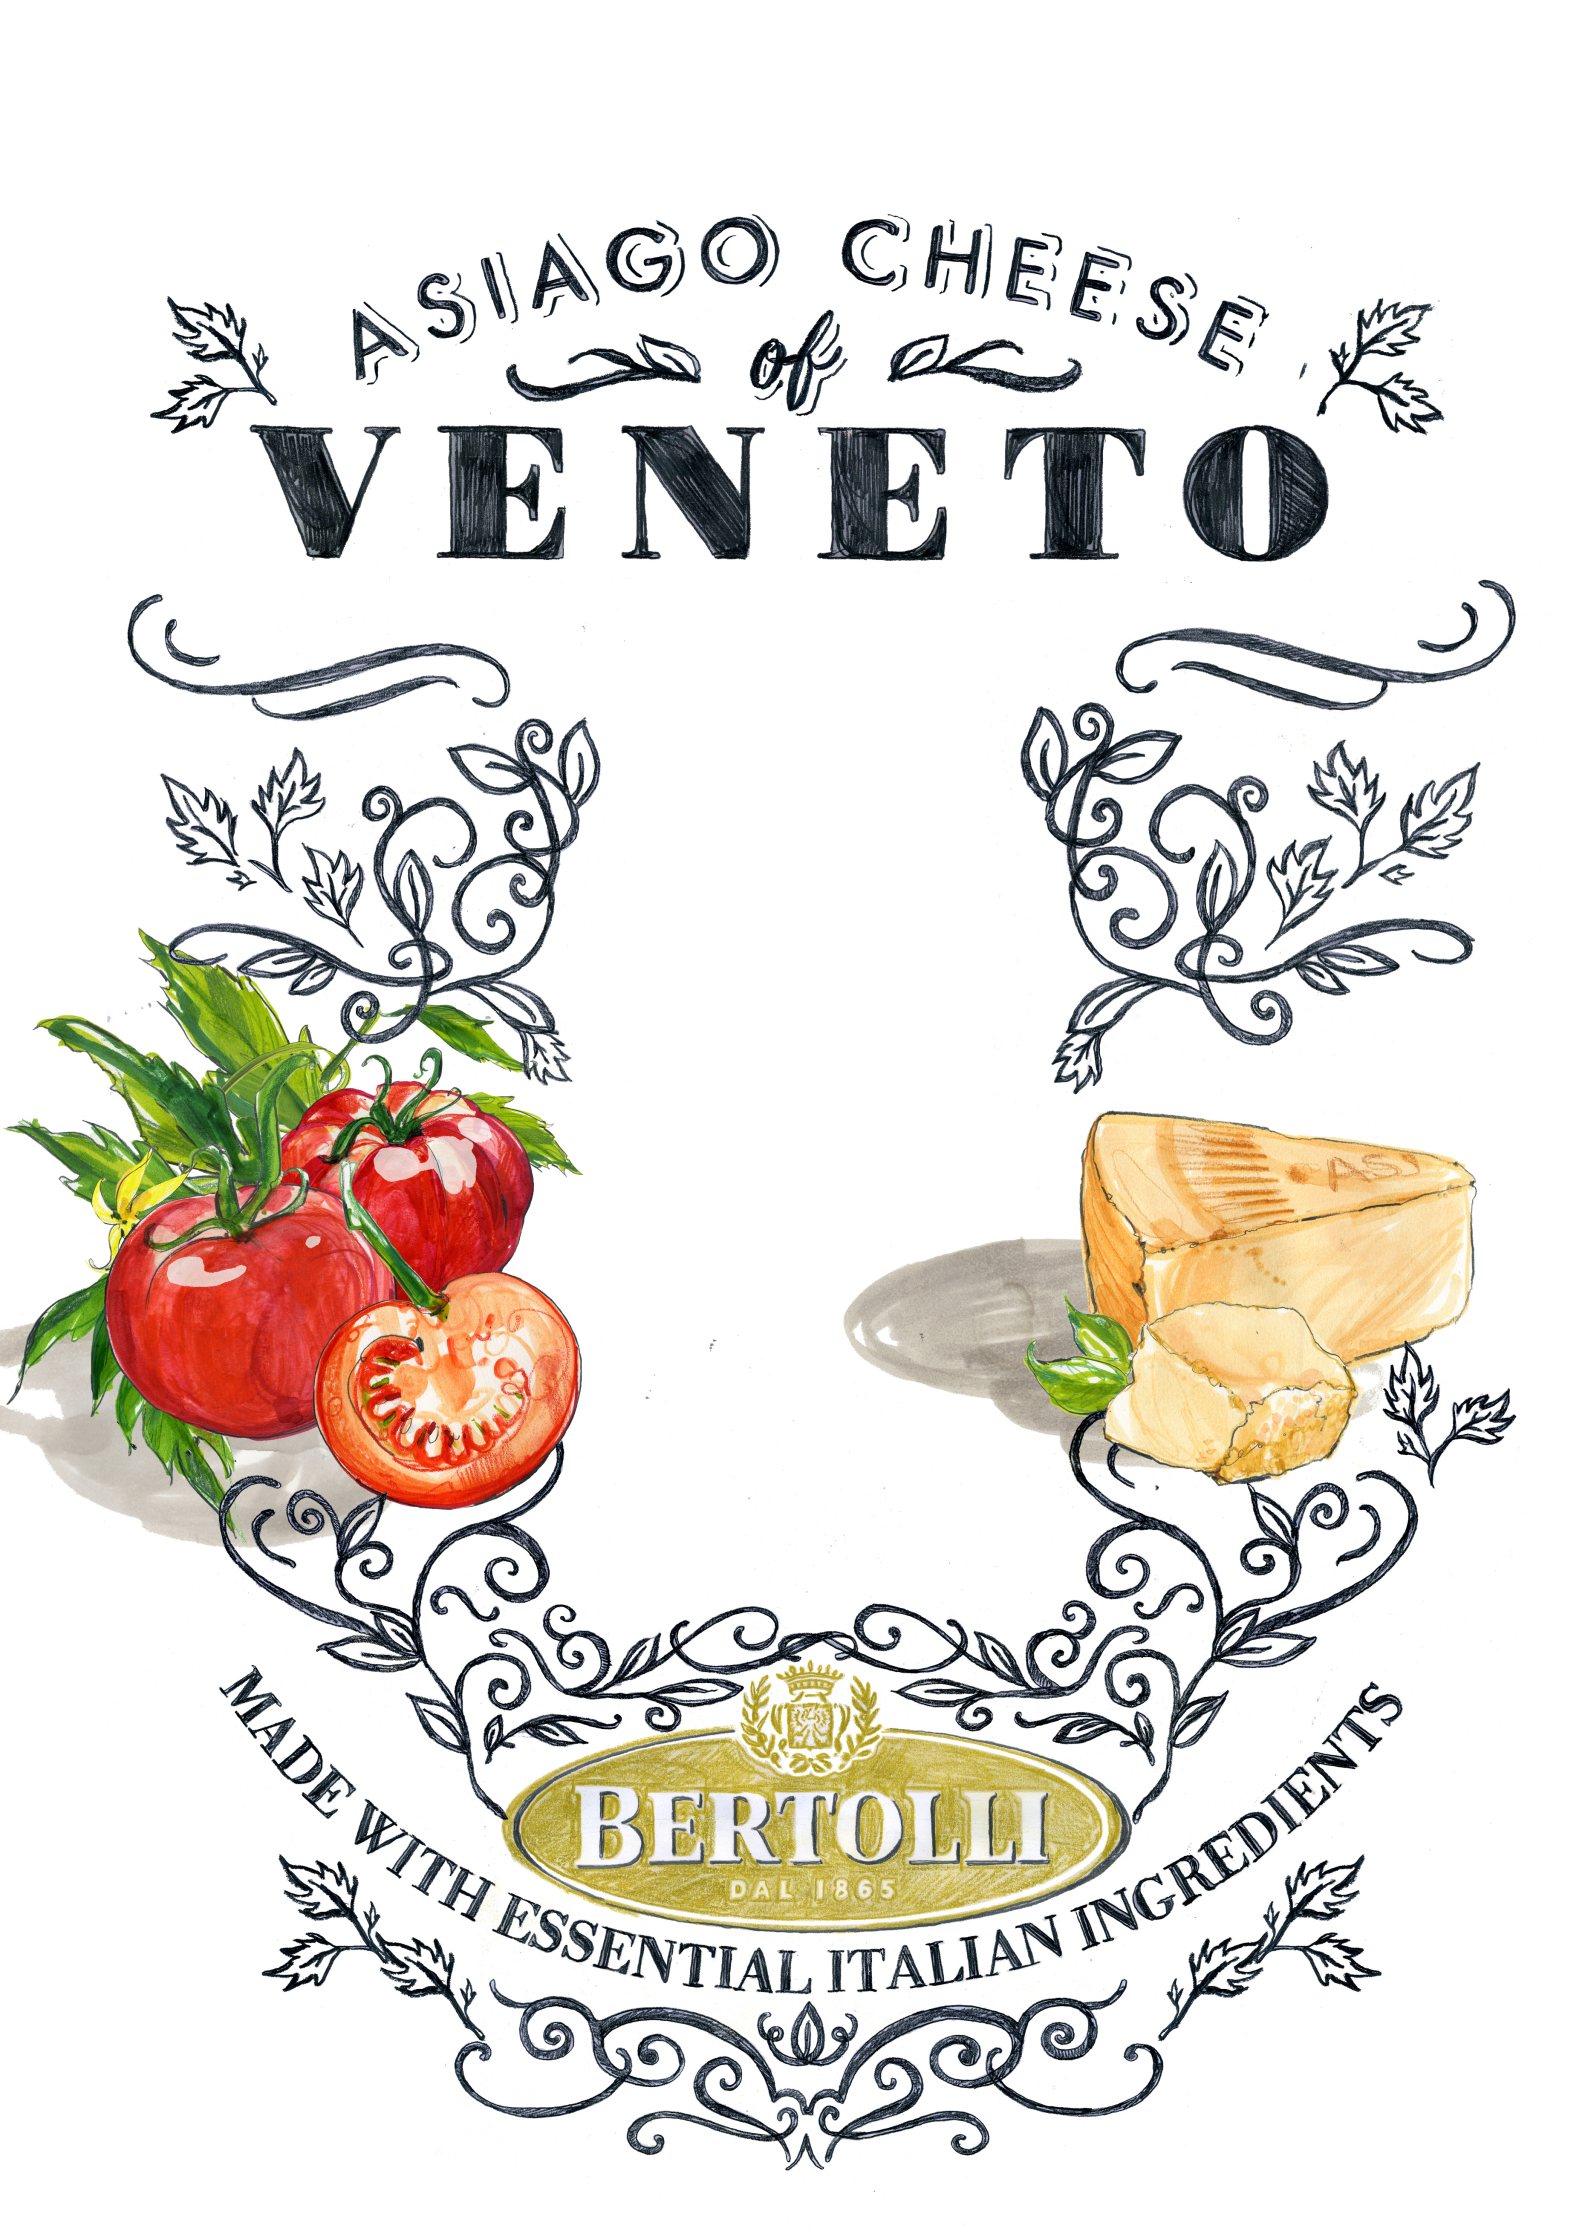 Veneto Tomatoes Parmesan Cheese Bertolli Pasta Sauce Mother Advert